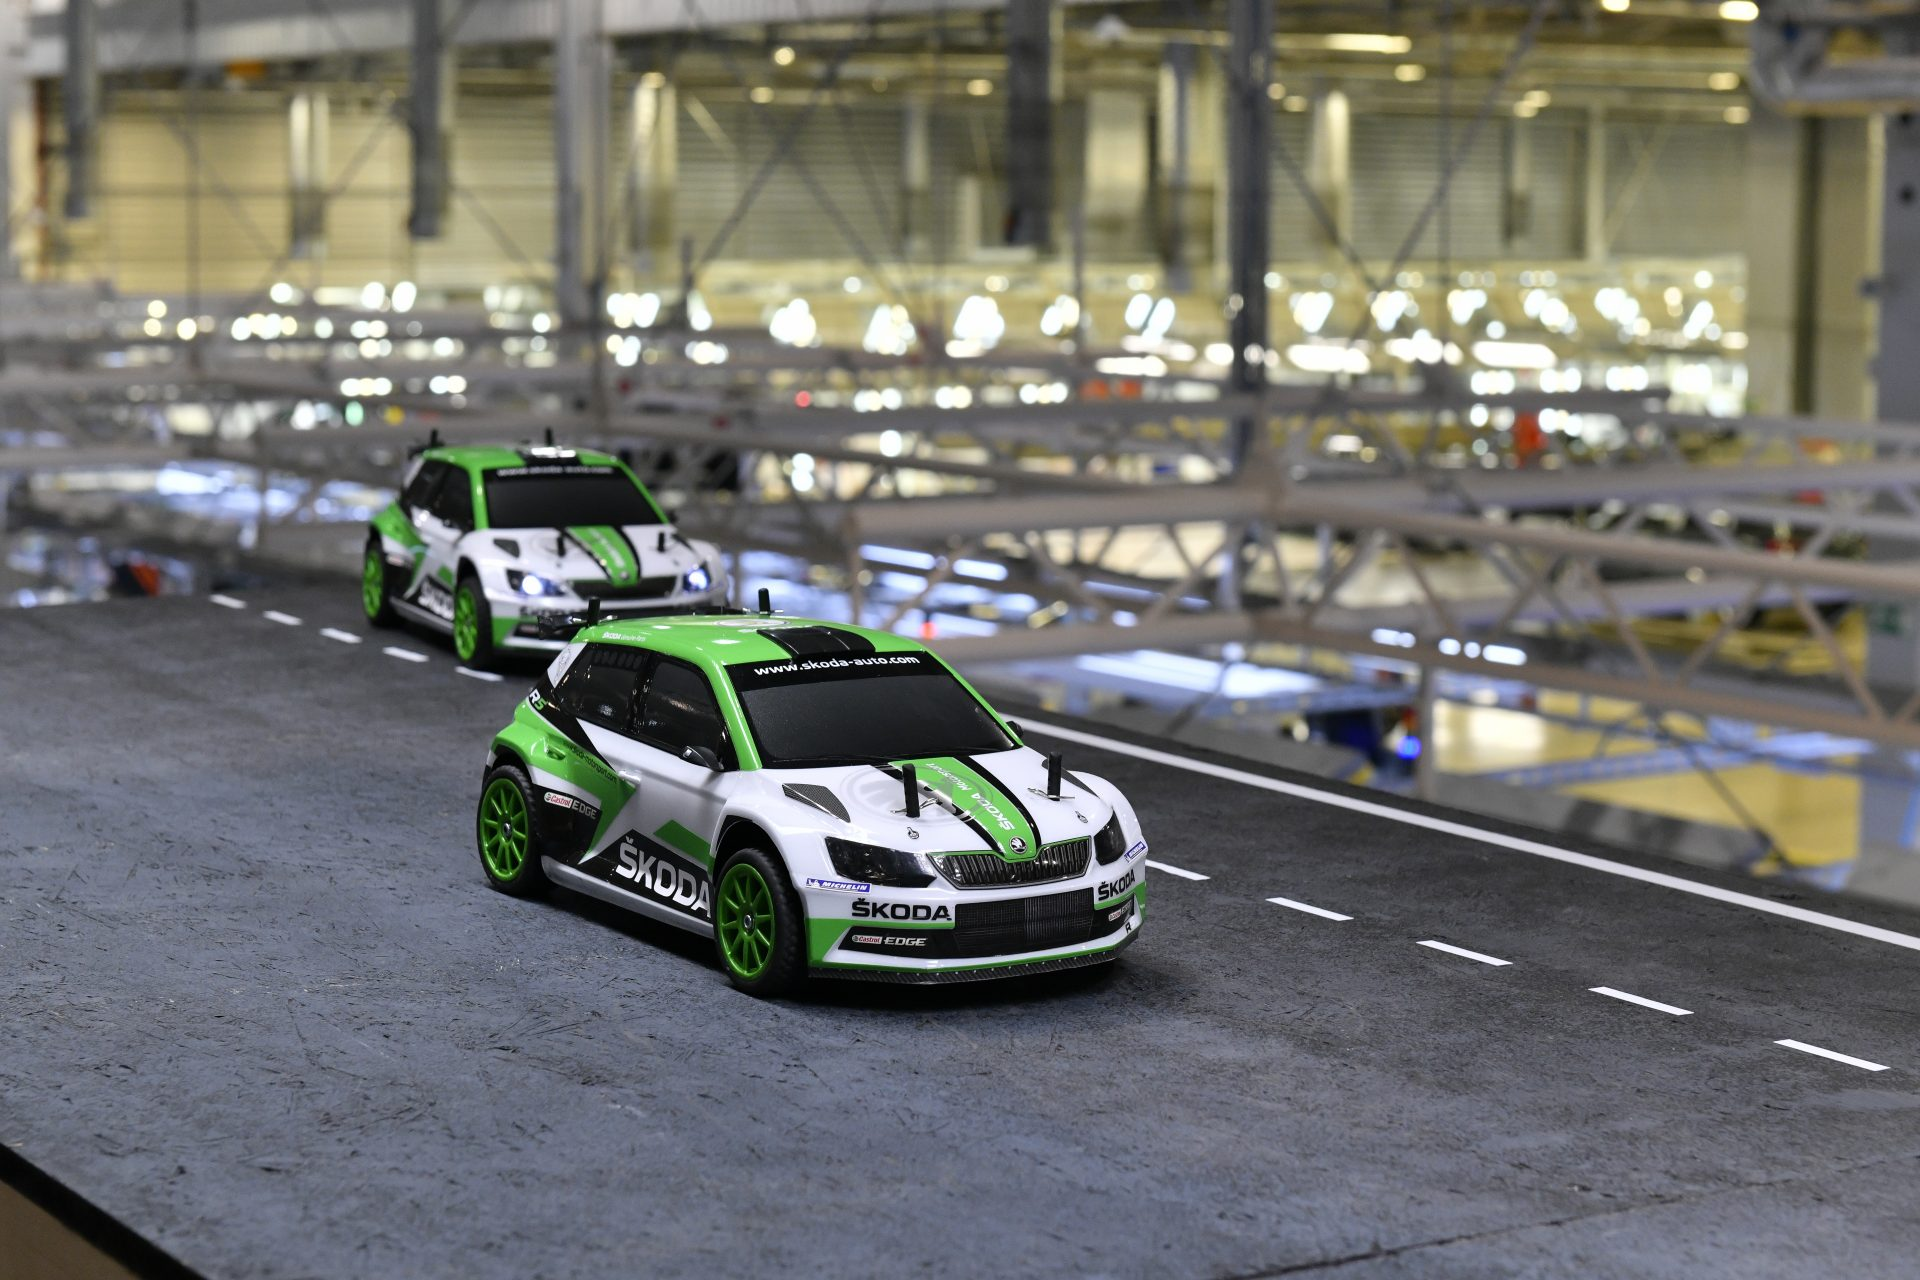 Is an RC Car Faster Than a Production Line? | RC Rallying